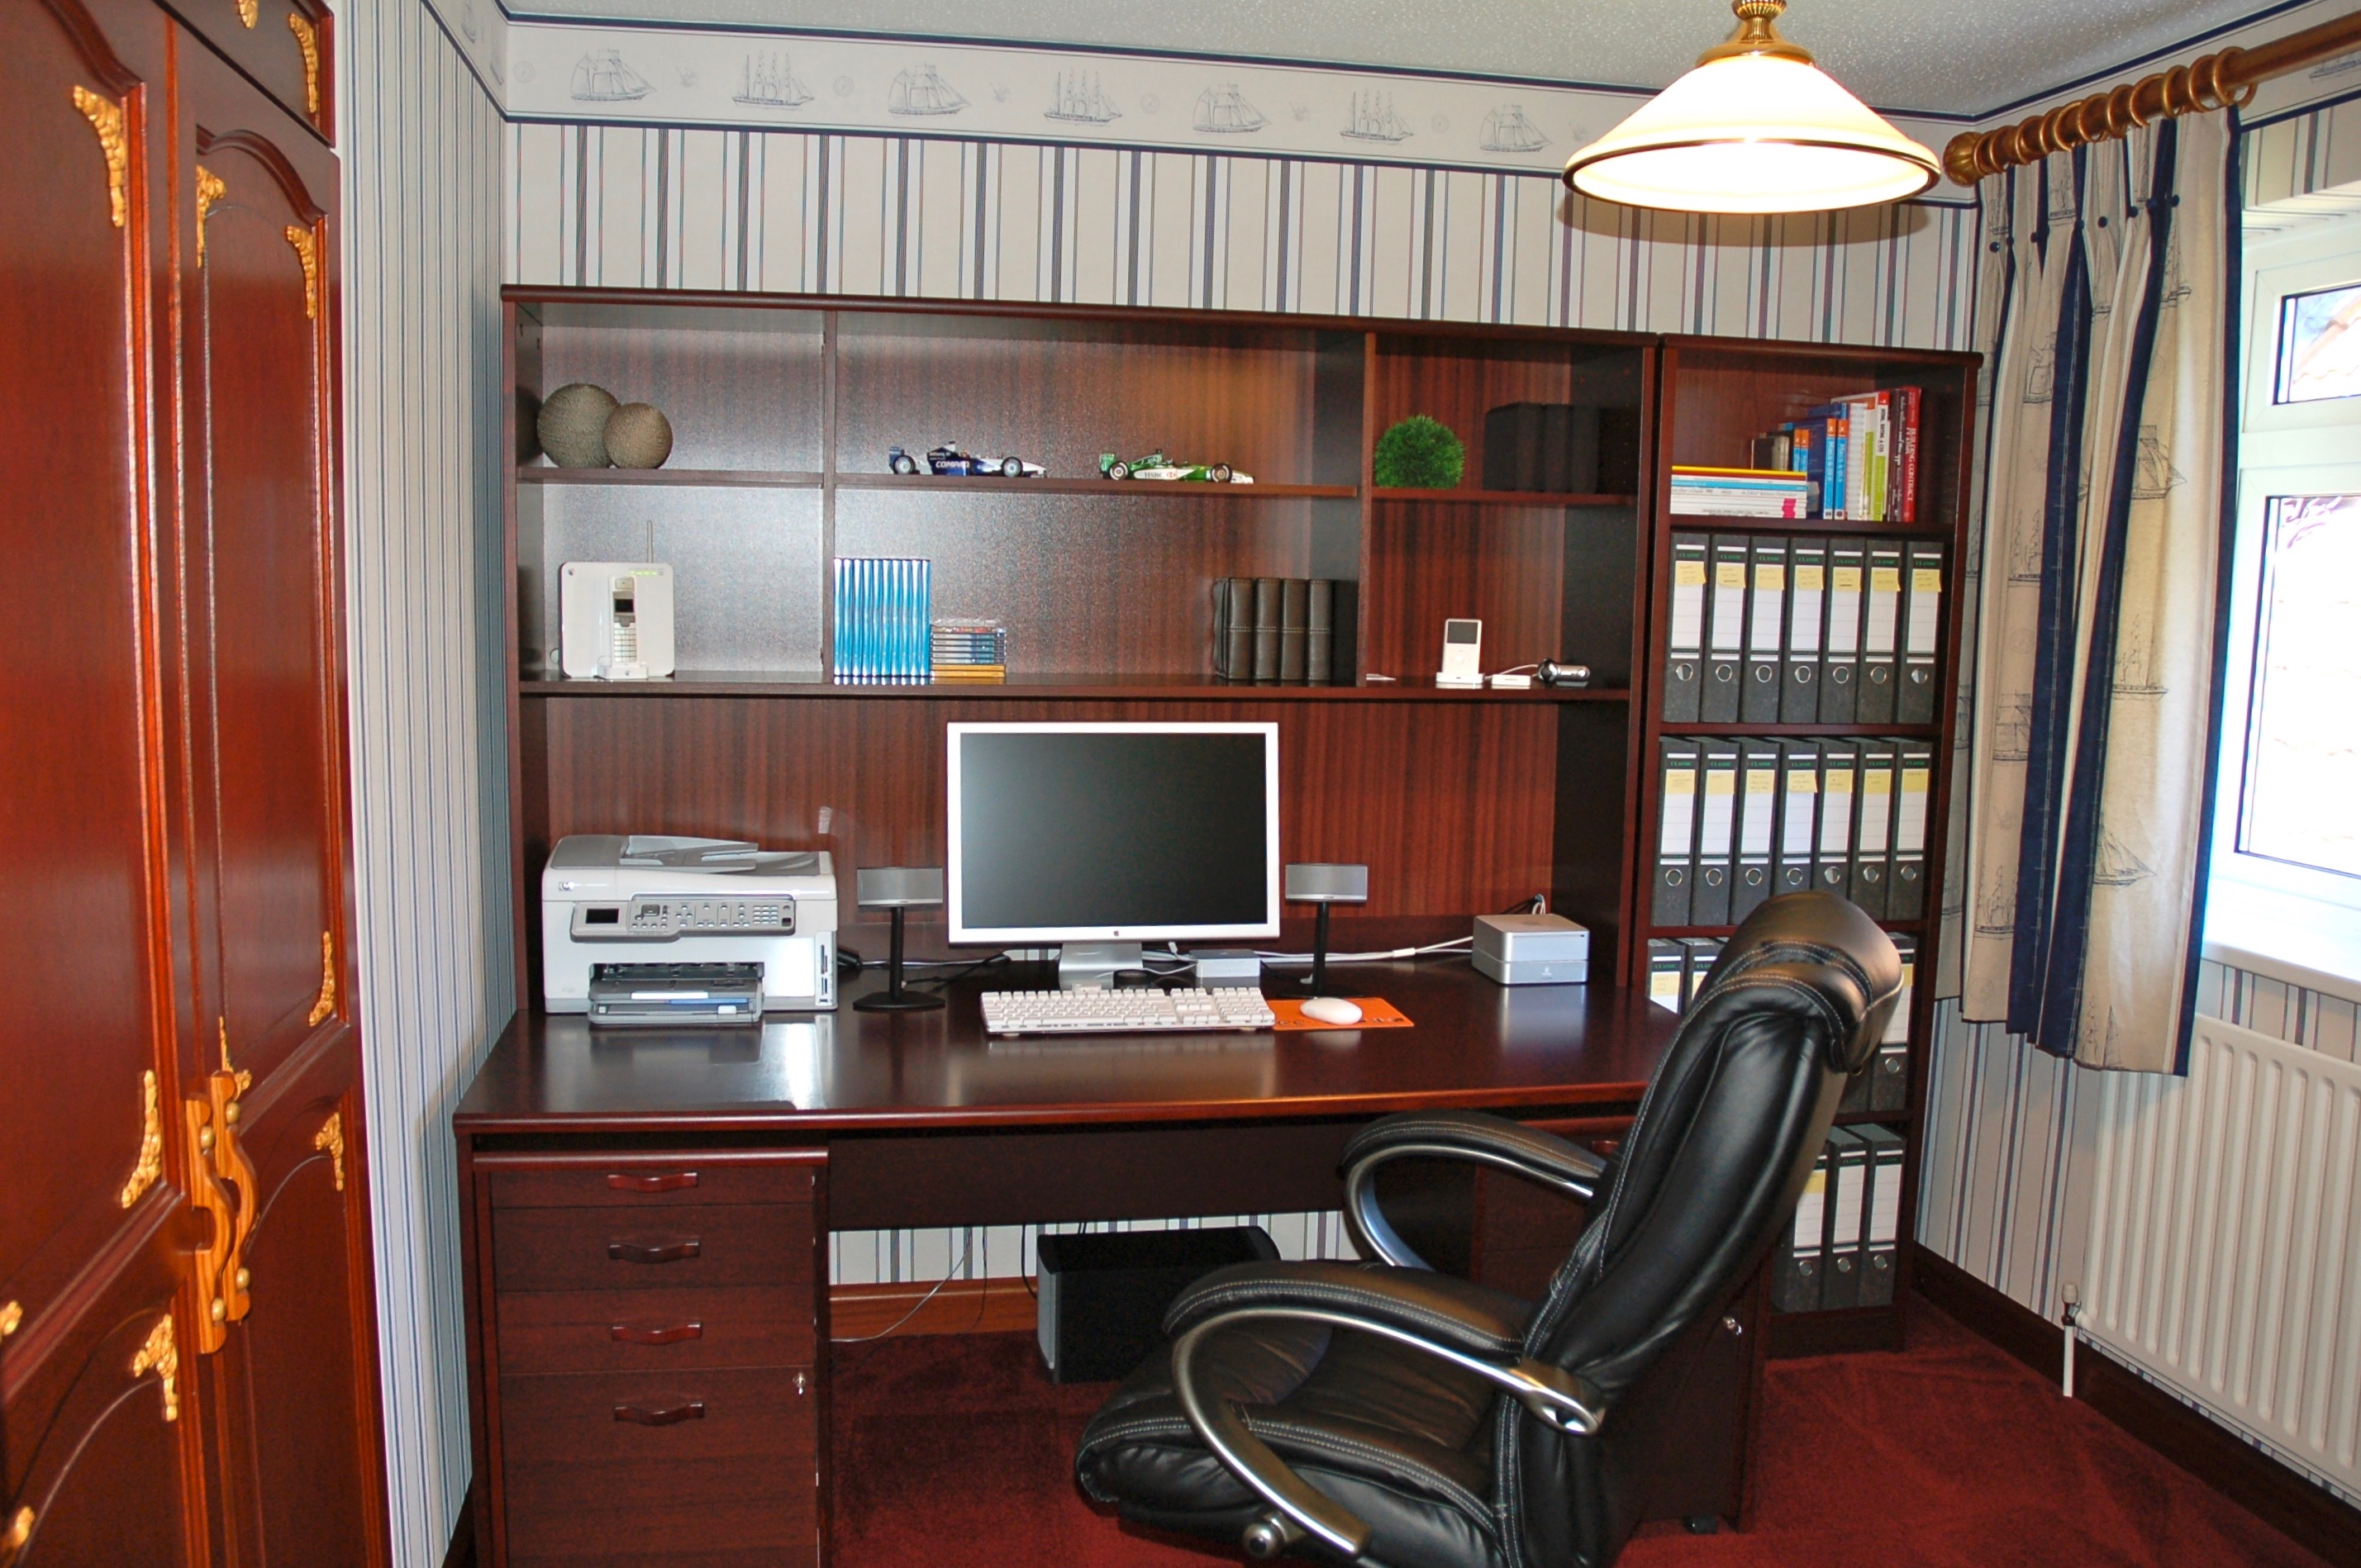 The author's spare bedroom converted to a nice office set up. The matching wallpaper and curtains, the dark wood office style furniture complimenting the wardrobe doors, the black leather executive swivel chair and the neat rows of lever arch file boxes. The computer set up is dominated by the 23 inch Apple Cinema display, with a MacMini on top of a matching back-up drive sat to the right and a Hewlett Packard all-in-one printer to the left. Also seen is an optical mouse, small stereo speakers, an iPod Classic a BT Homehub and an underdesk bass sub-woofer